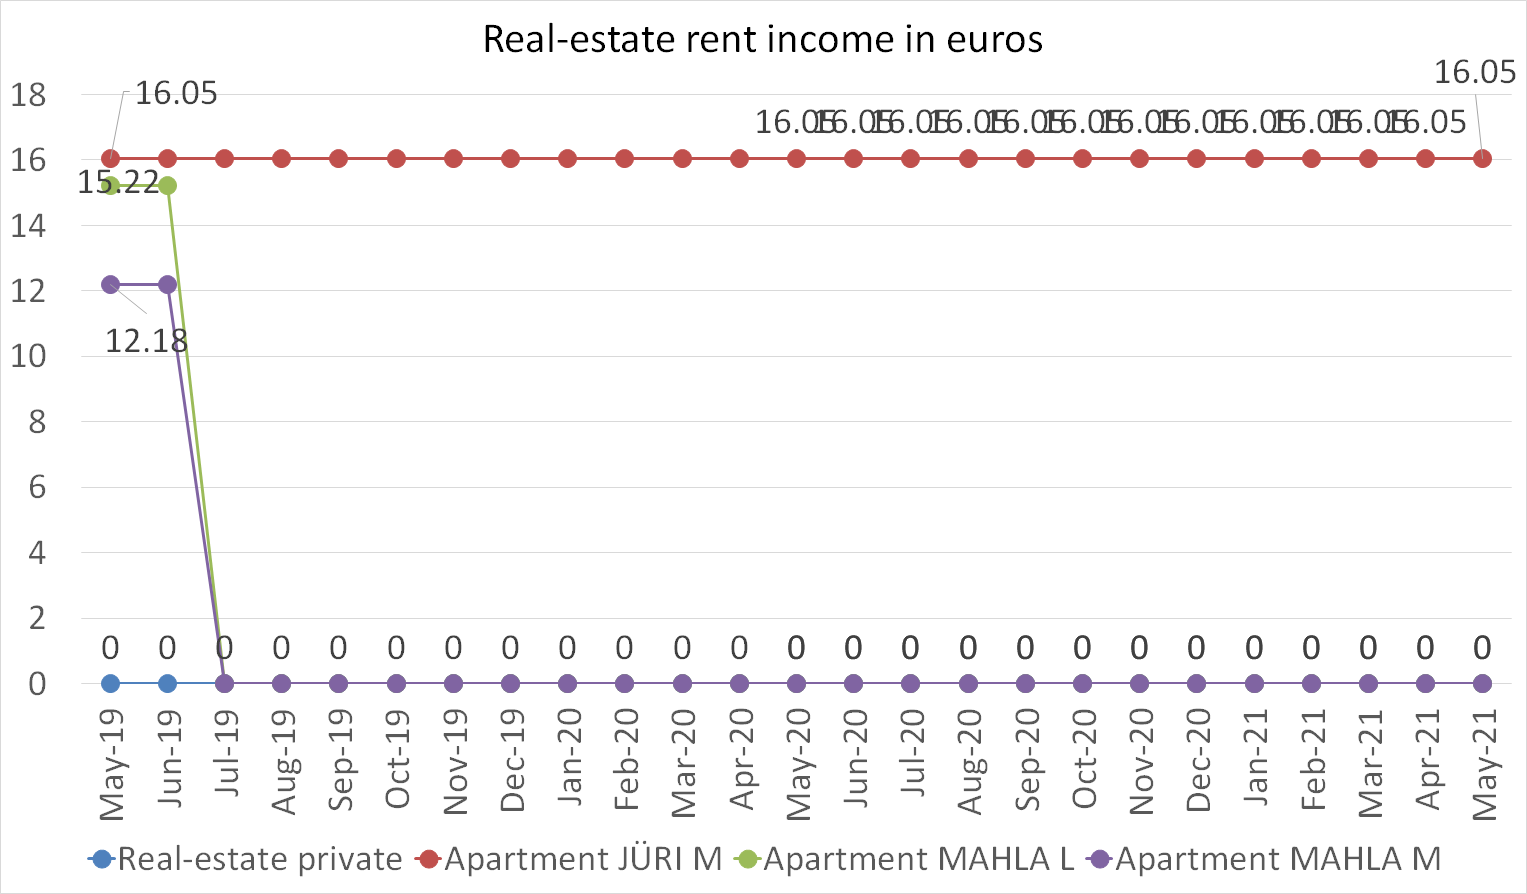 real-estate rent income in euros in may 2021